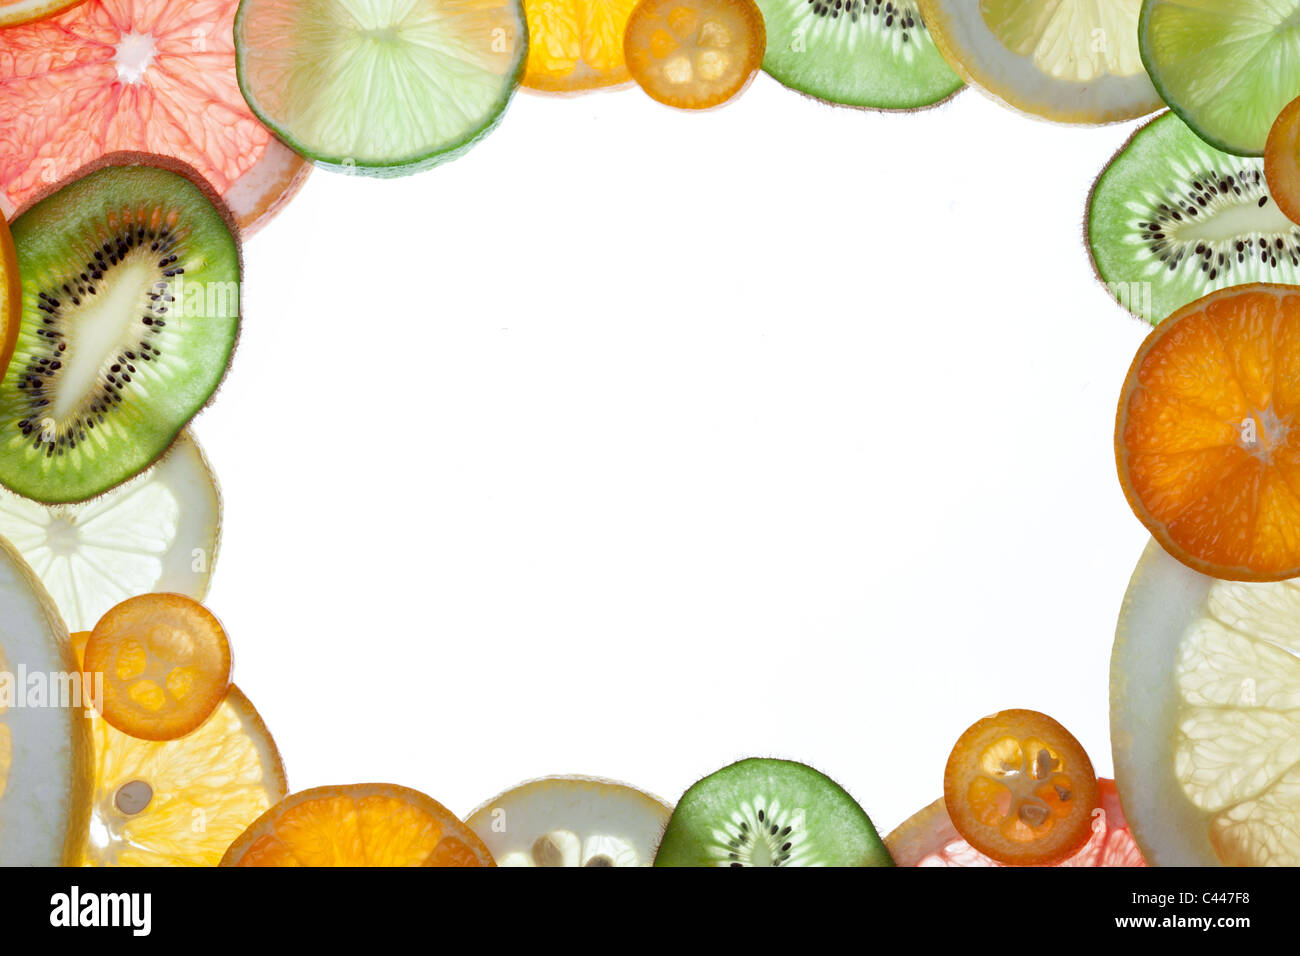 Back projected citrus slices frame. - Stock Image